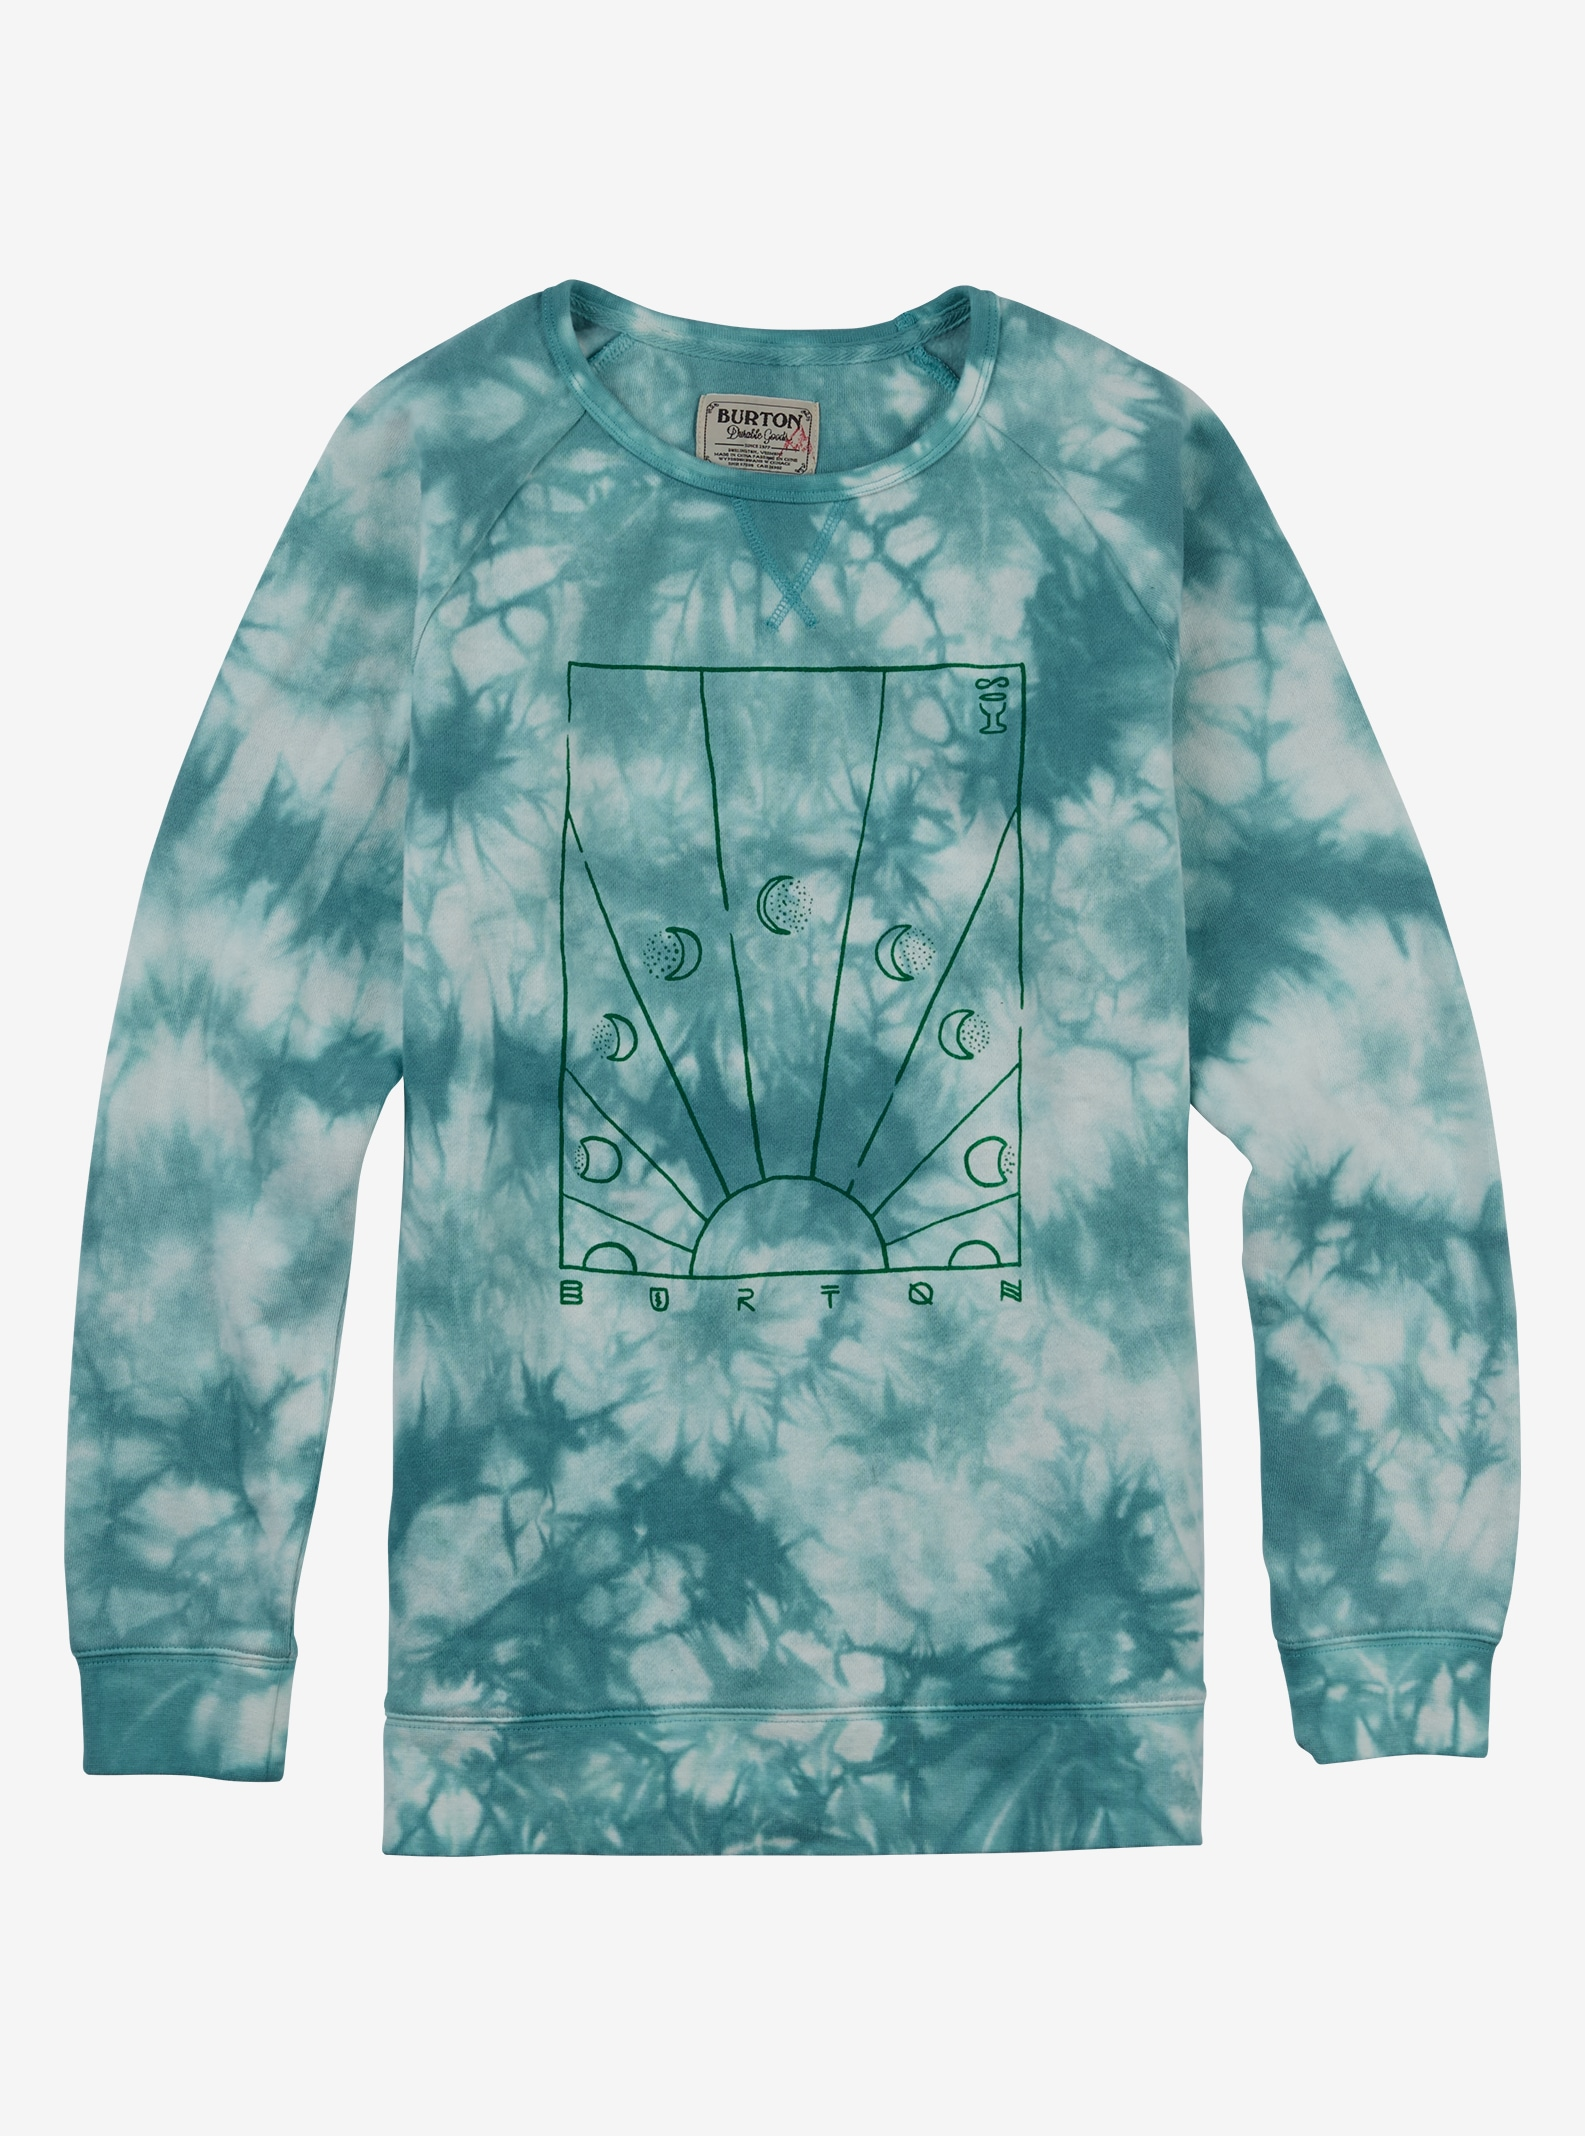 Burton Dusk Crew shown in Agate Tie Dye